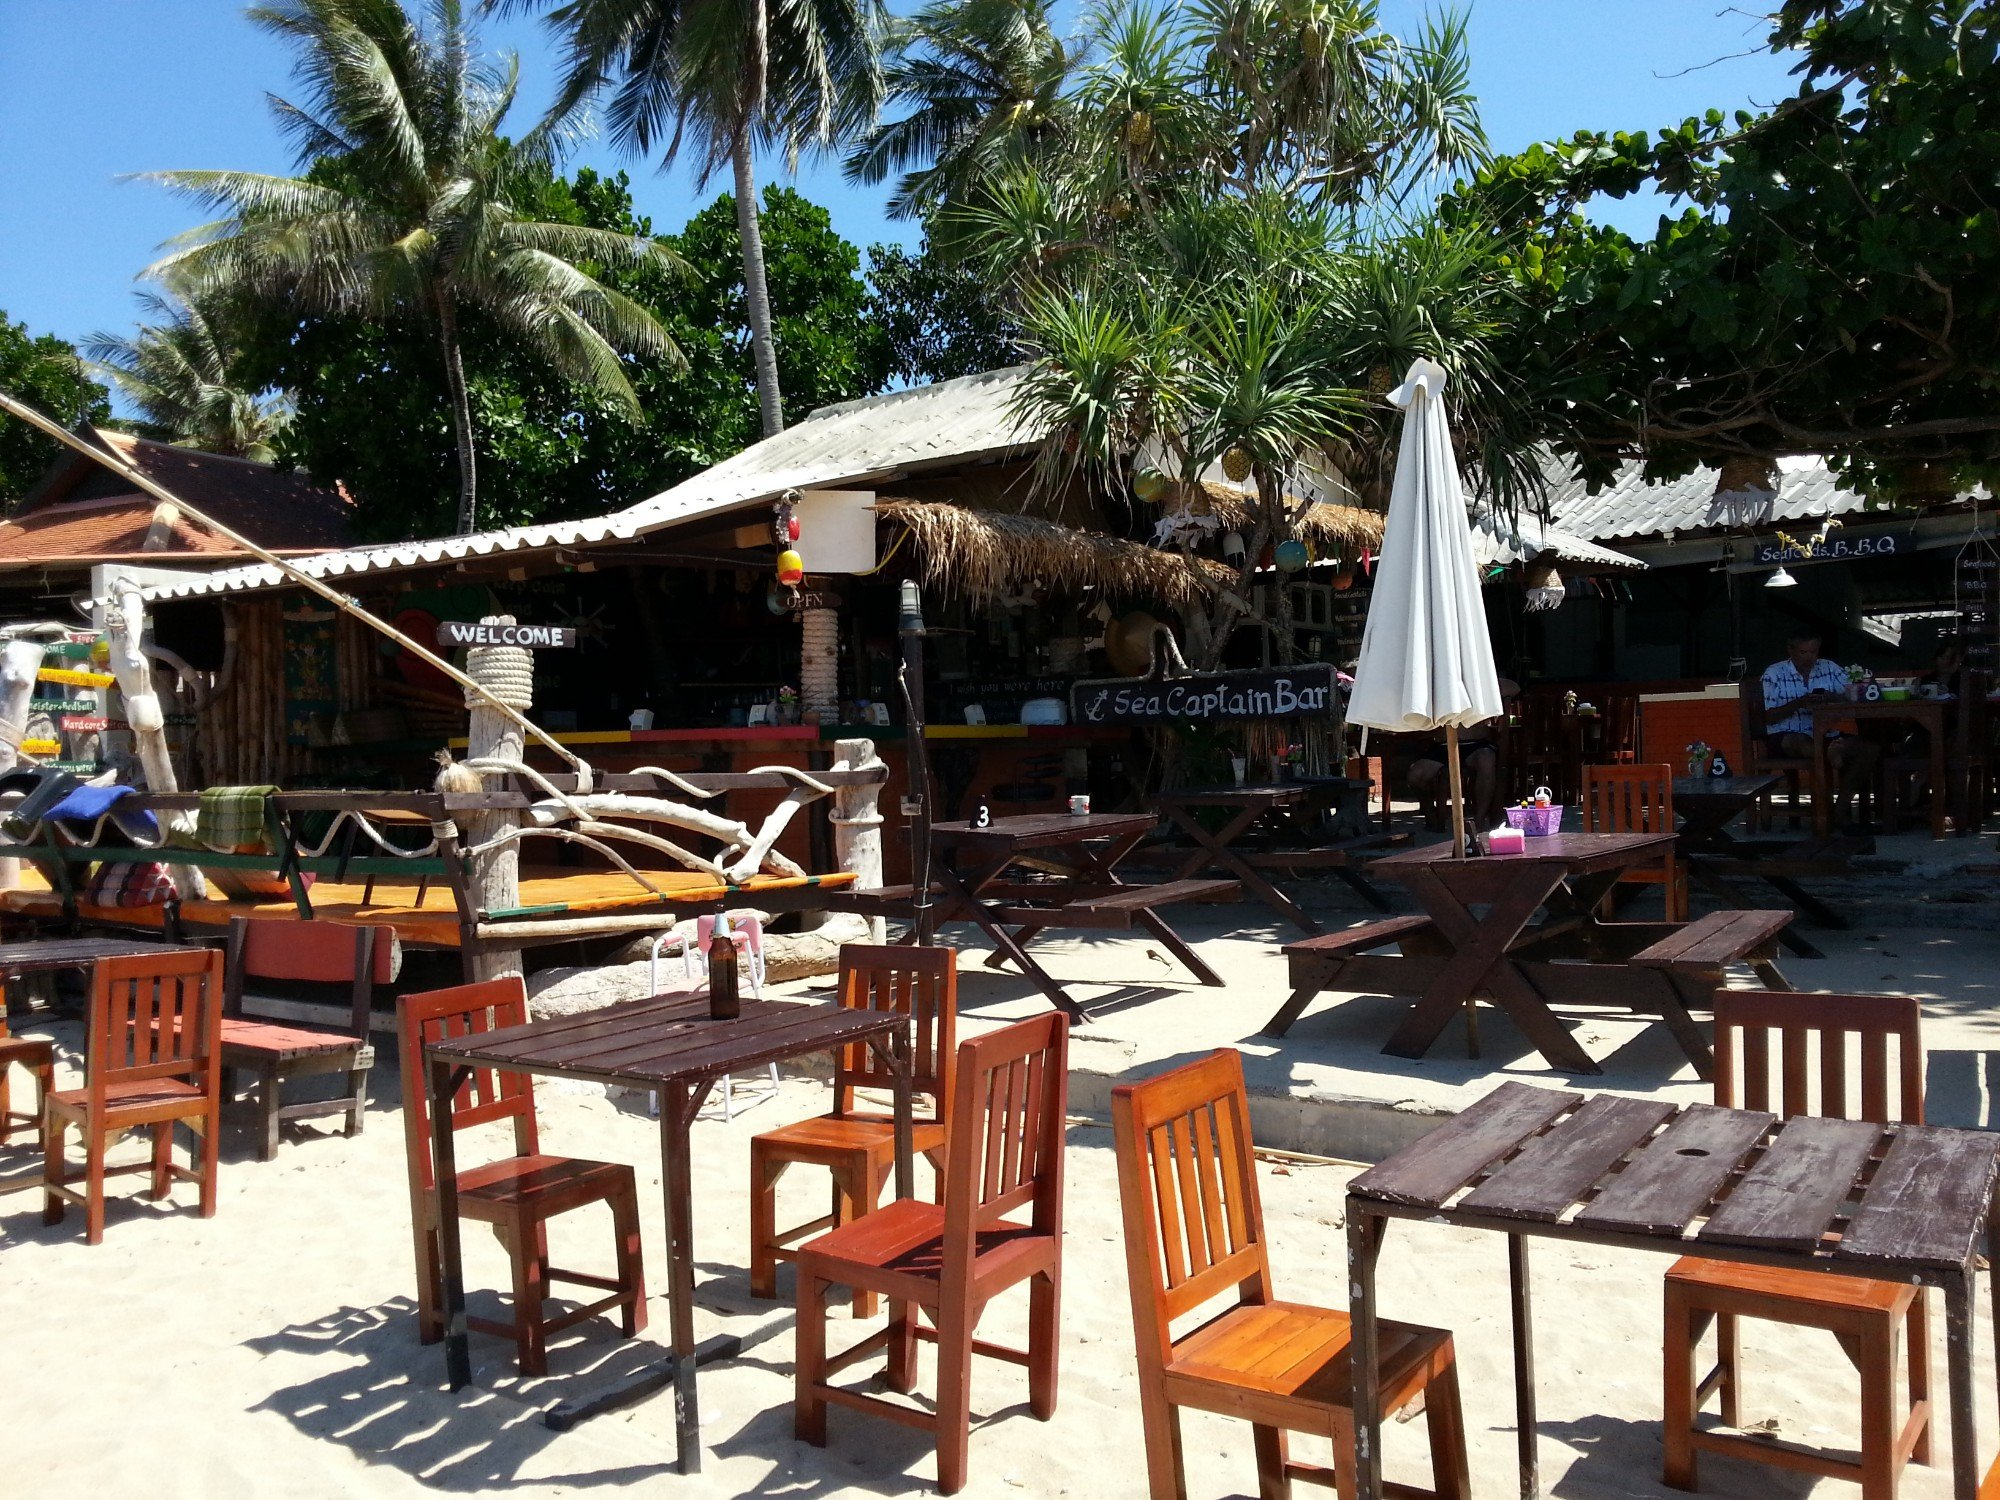 Sea Captain Bar on Klong Khong Beach